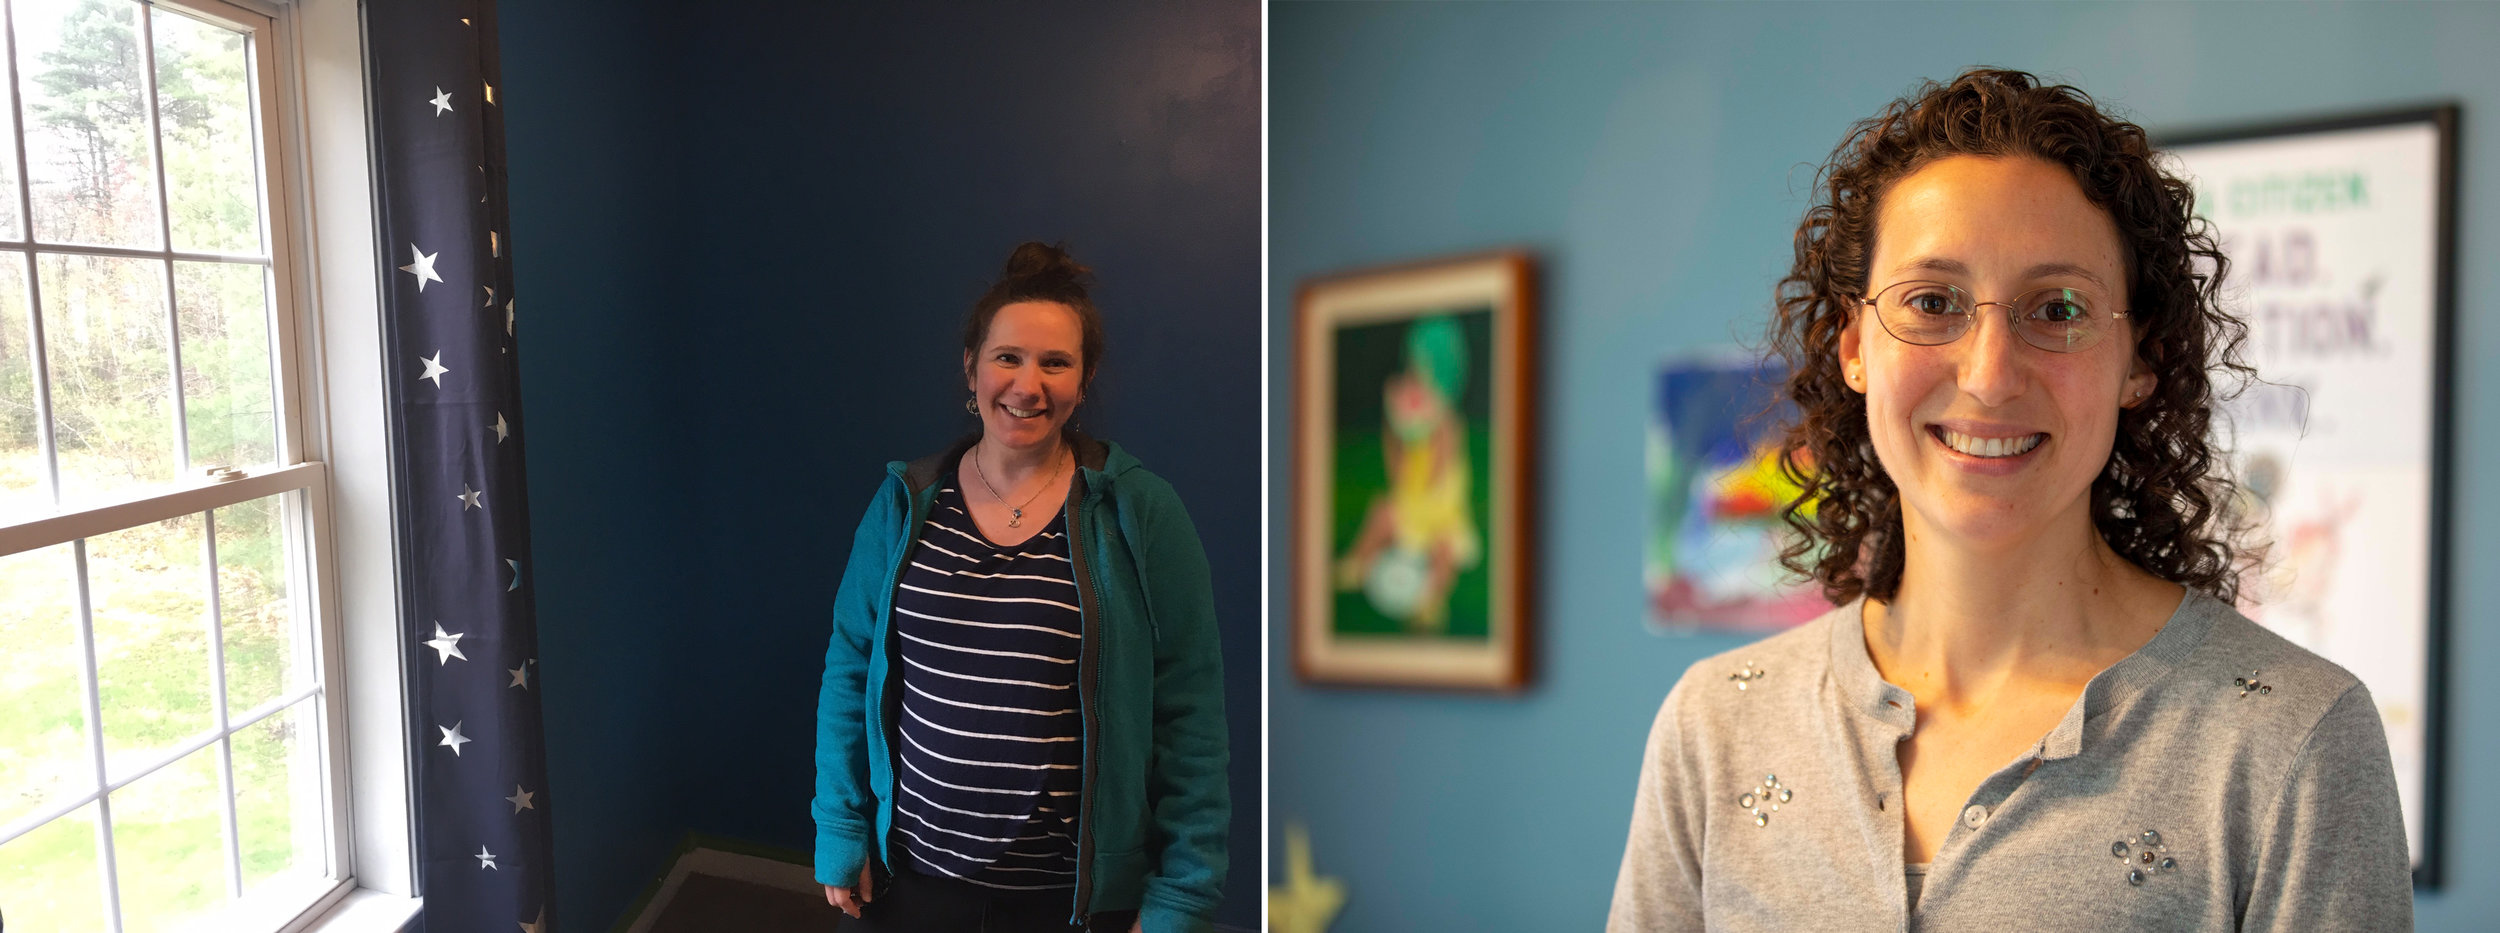 Sophia Cunningham (left), in her baby's room, and Tara Williams (right) of the Maine Association for the Education of Young Children. (Maine Public photos by Patty Wight and Rebecca Conley)